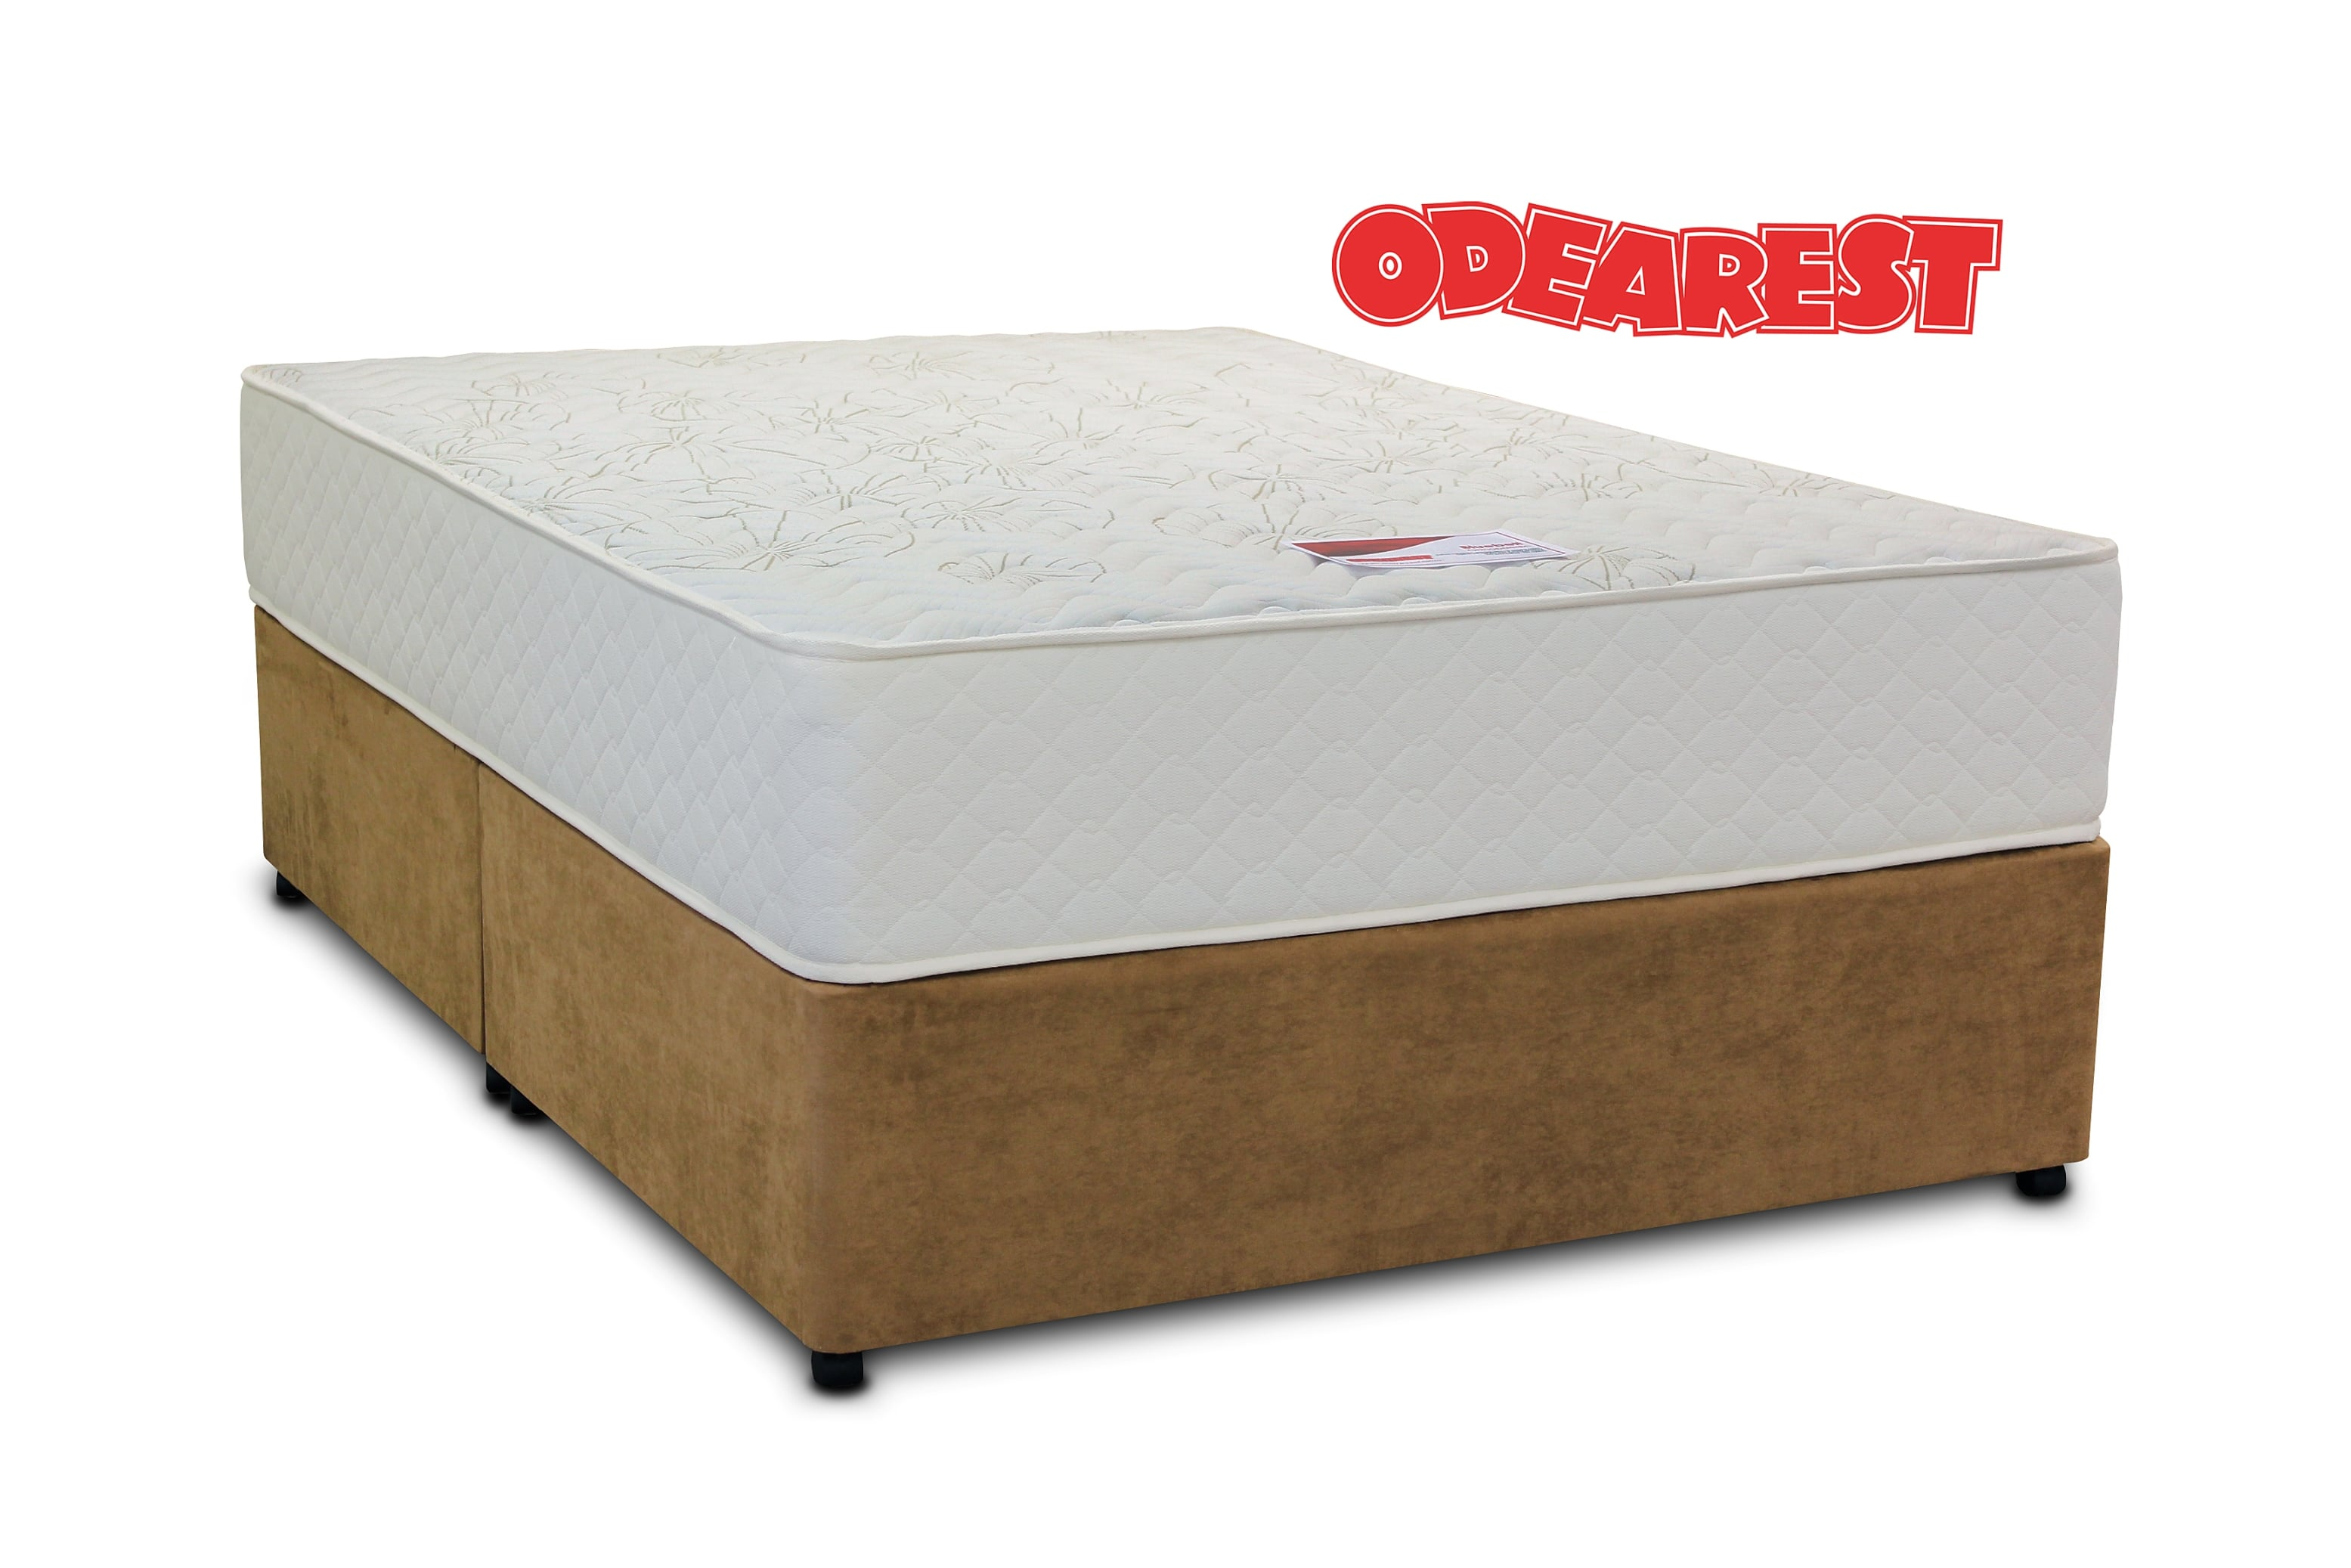 Odearest 5' Bluebell Divan Bed